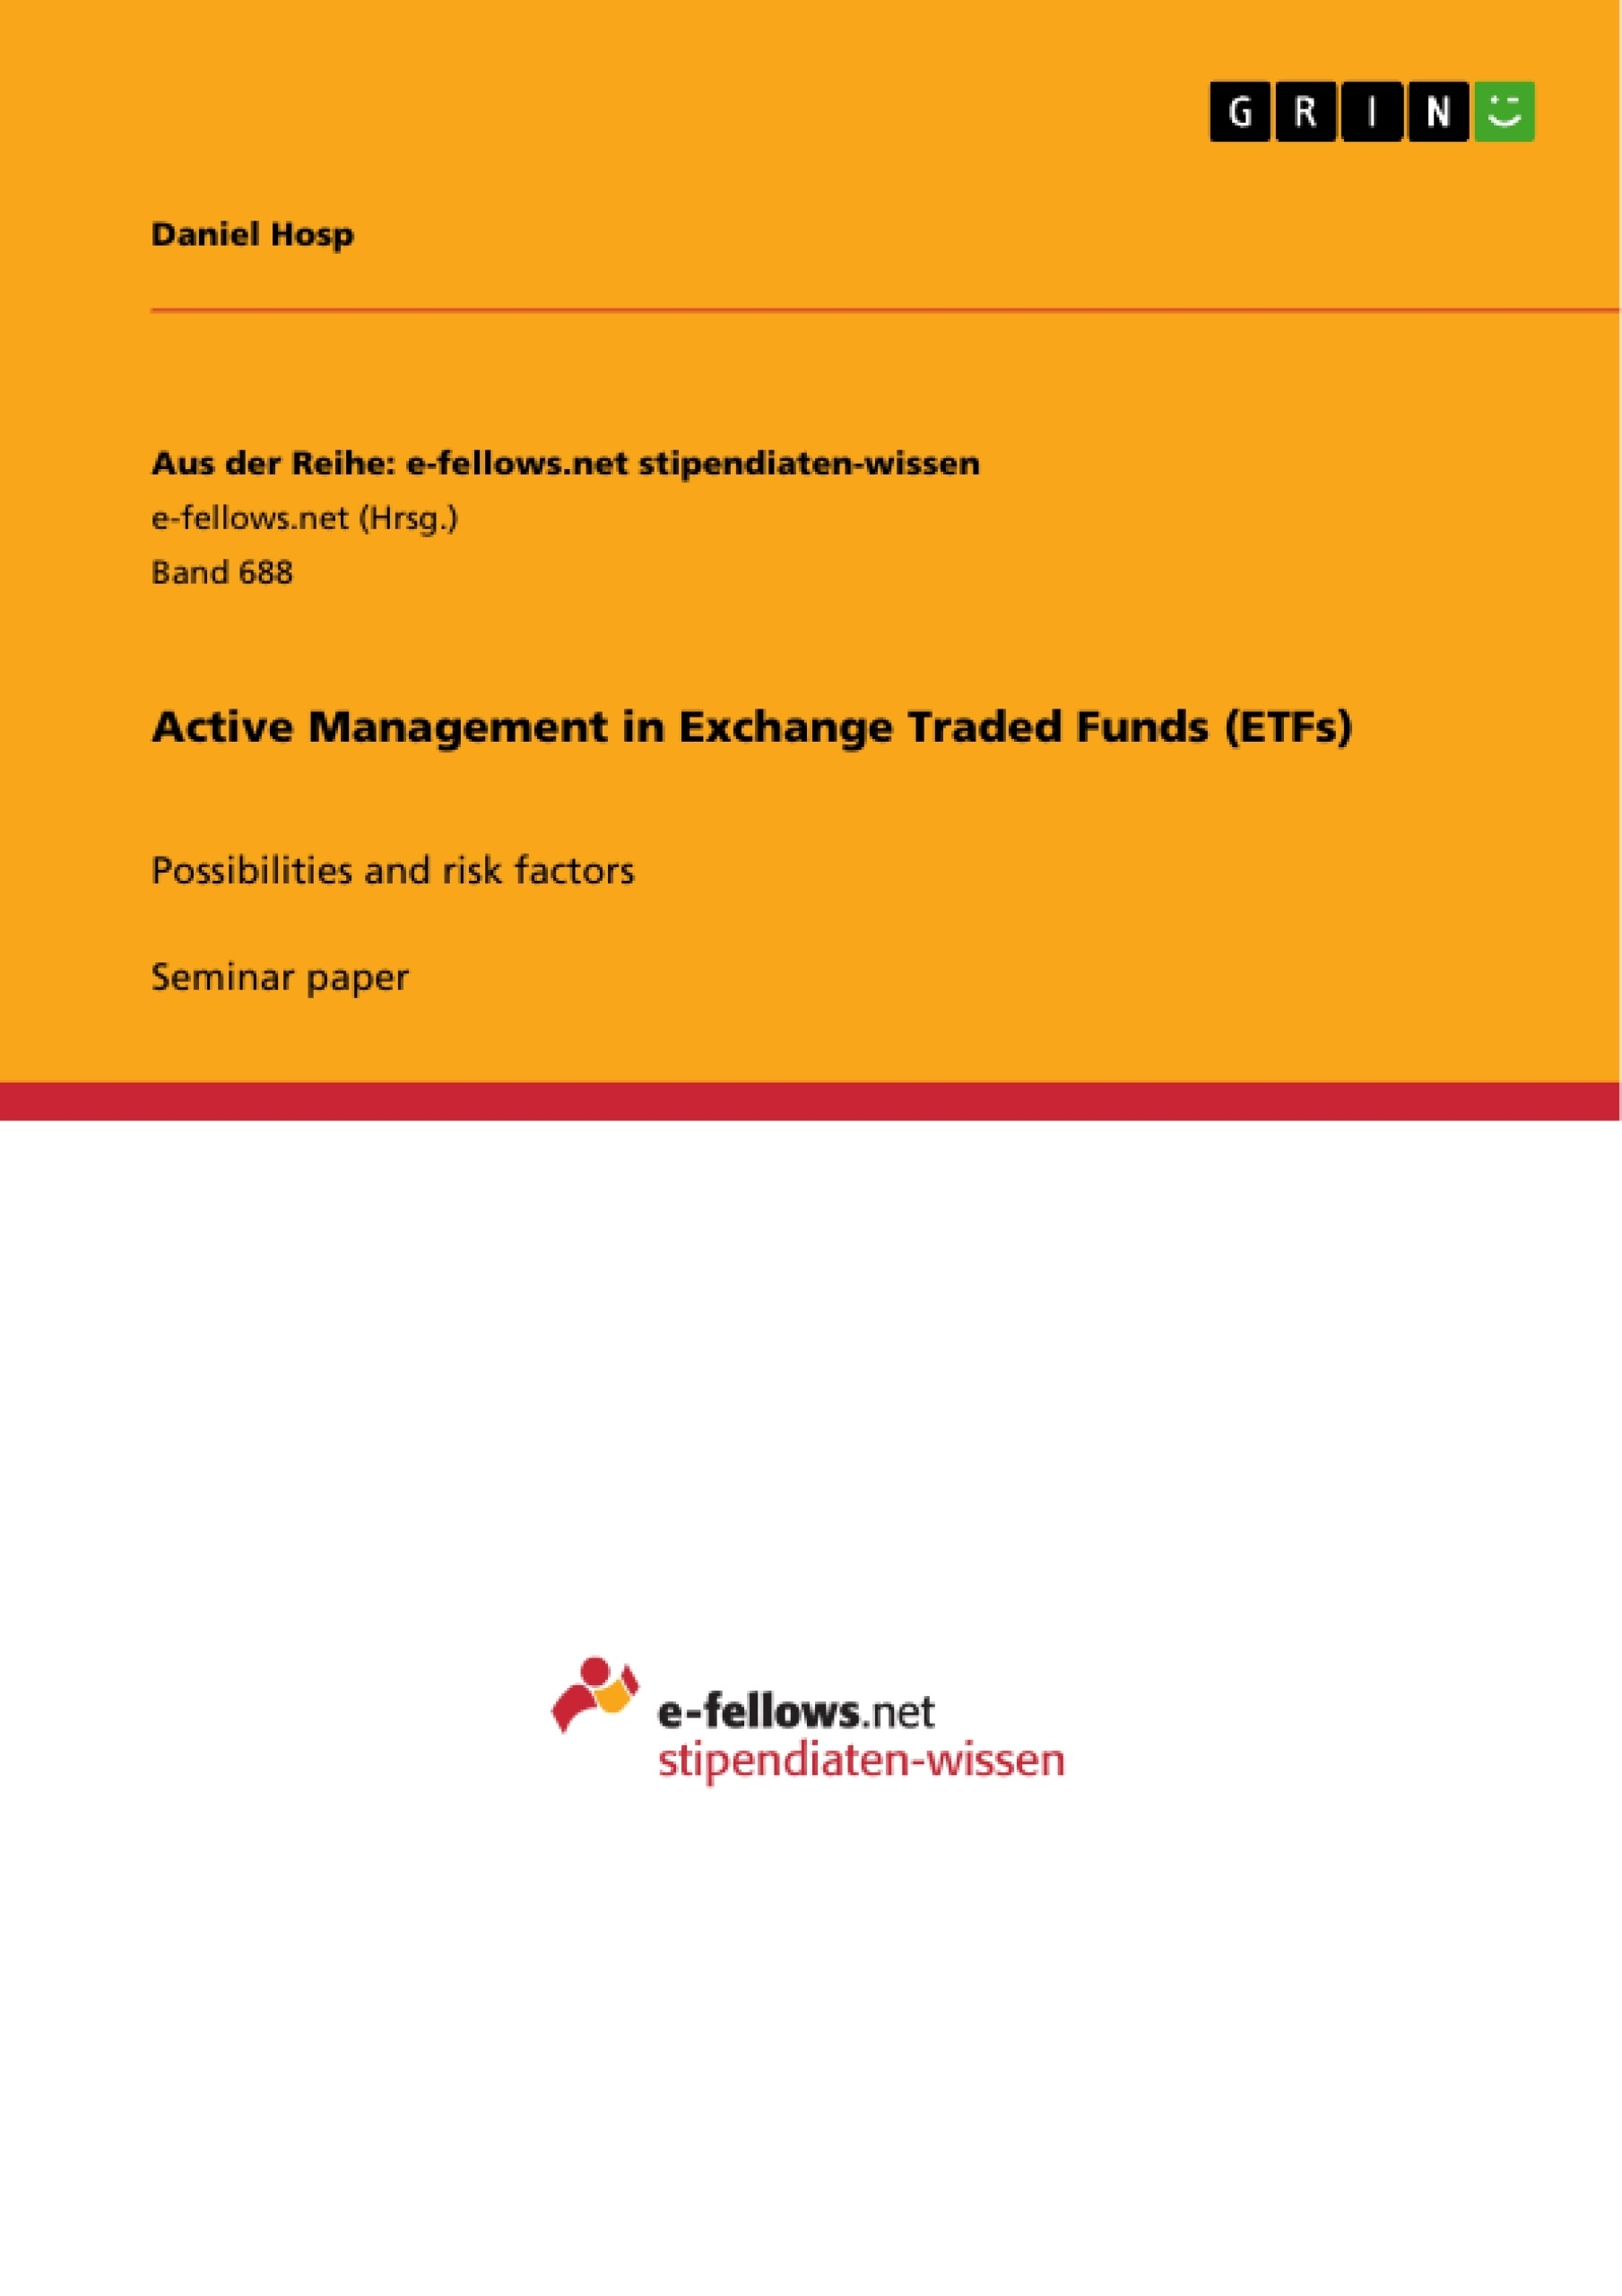 Title: Active Management in Exchange Traded Funds (ETFs)